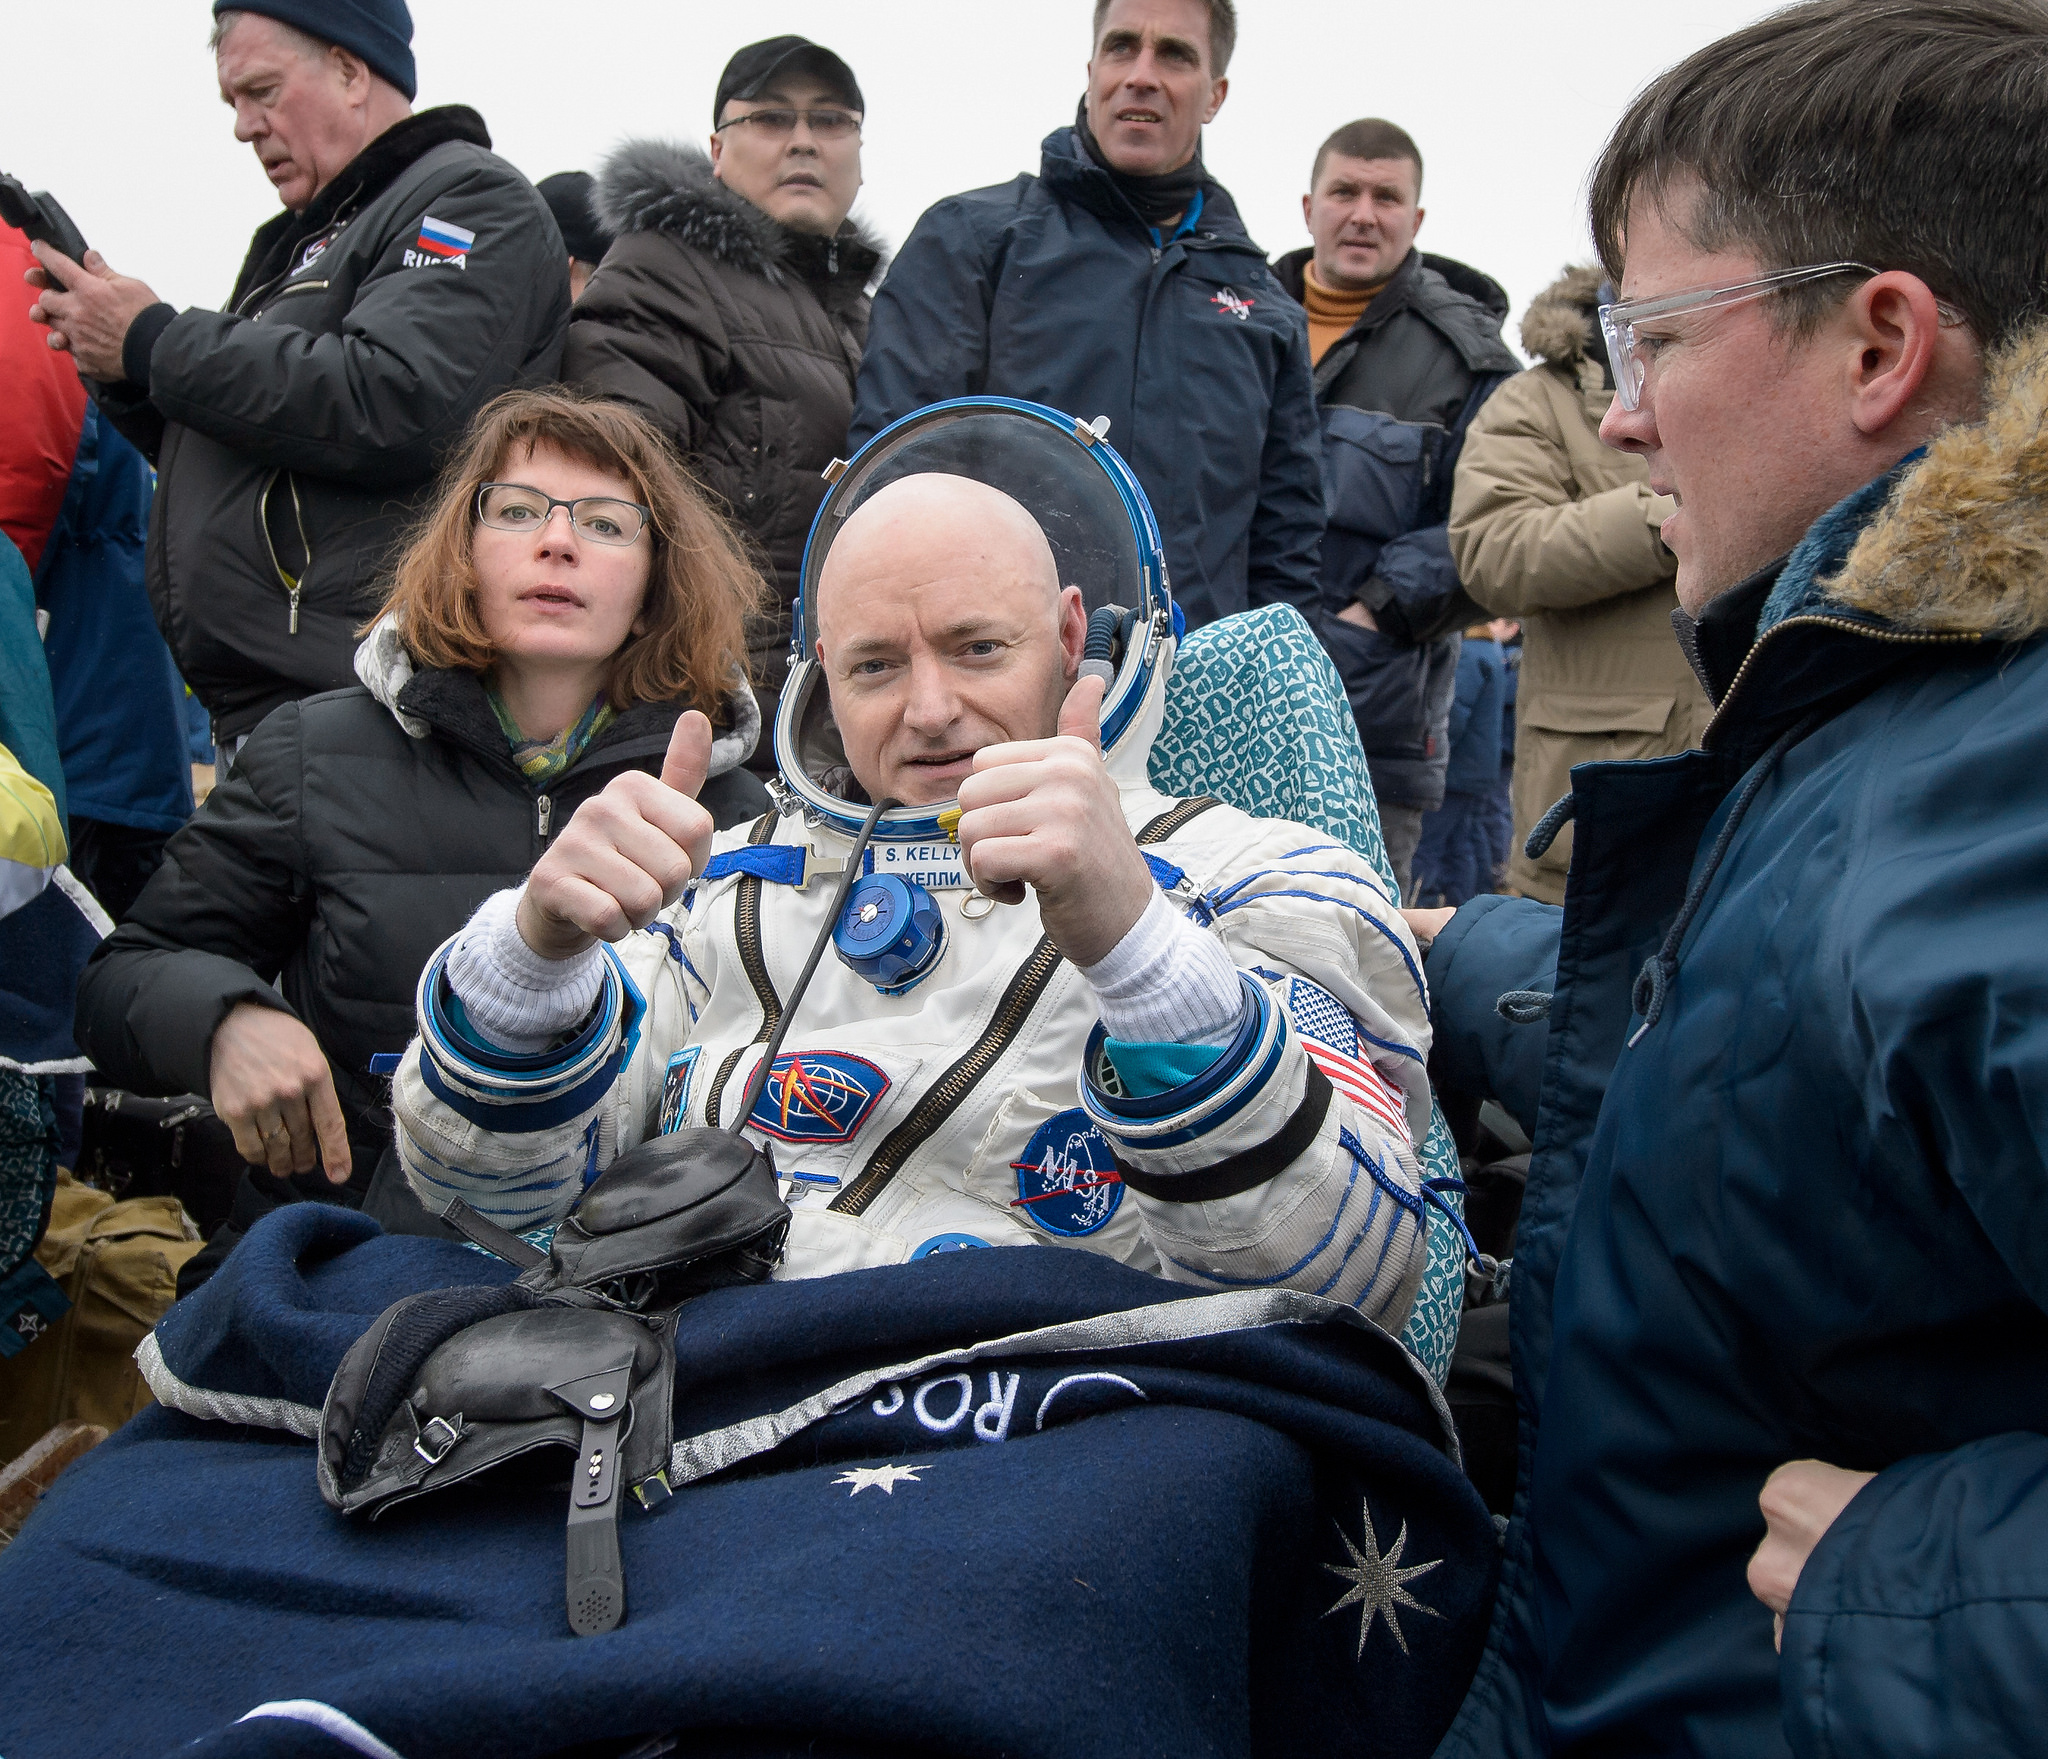 Scott Kelly: Back on Earth